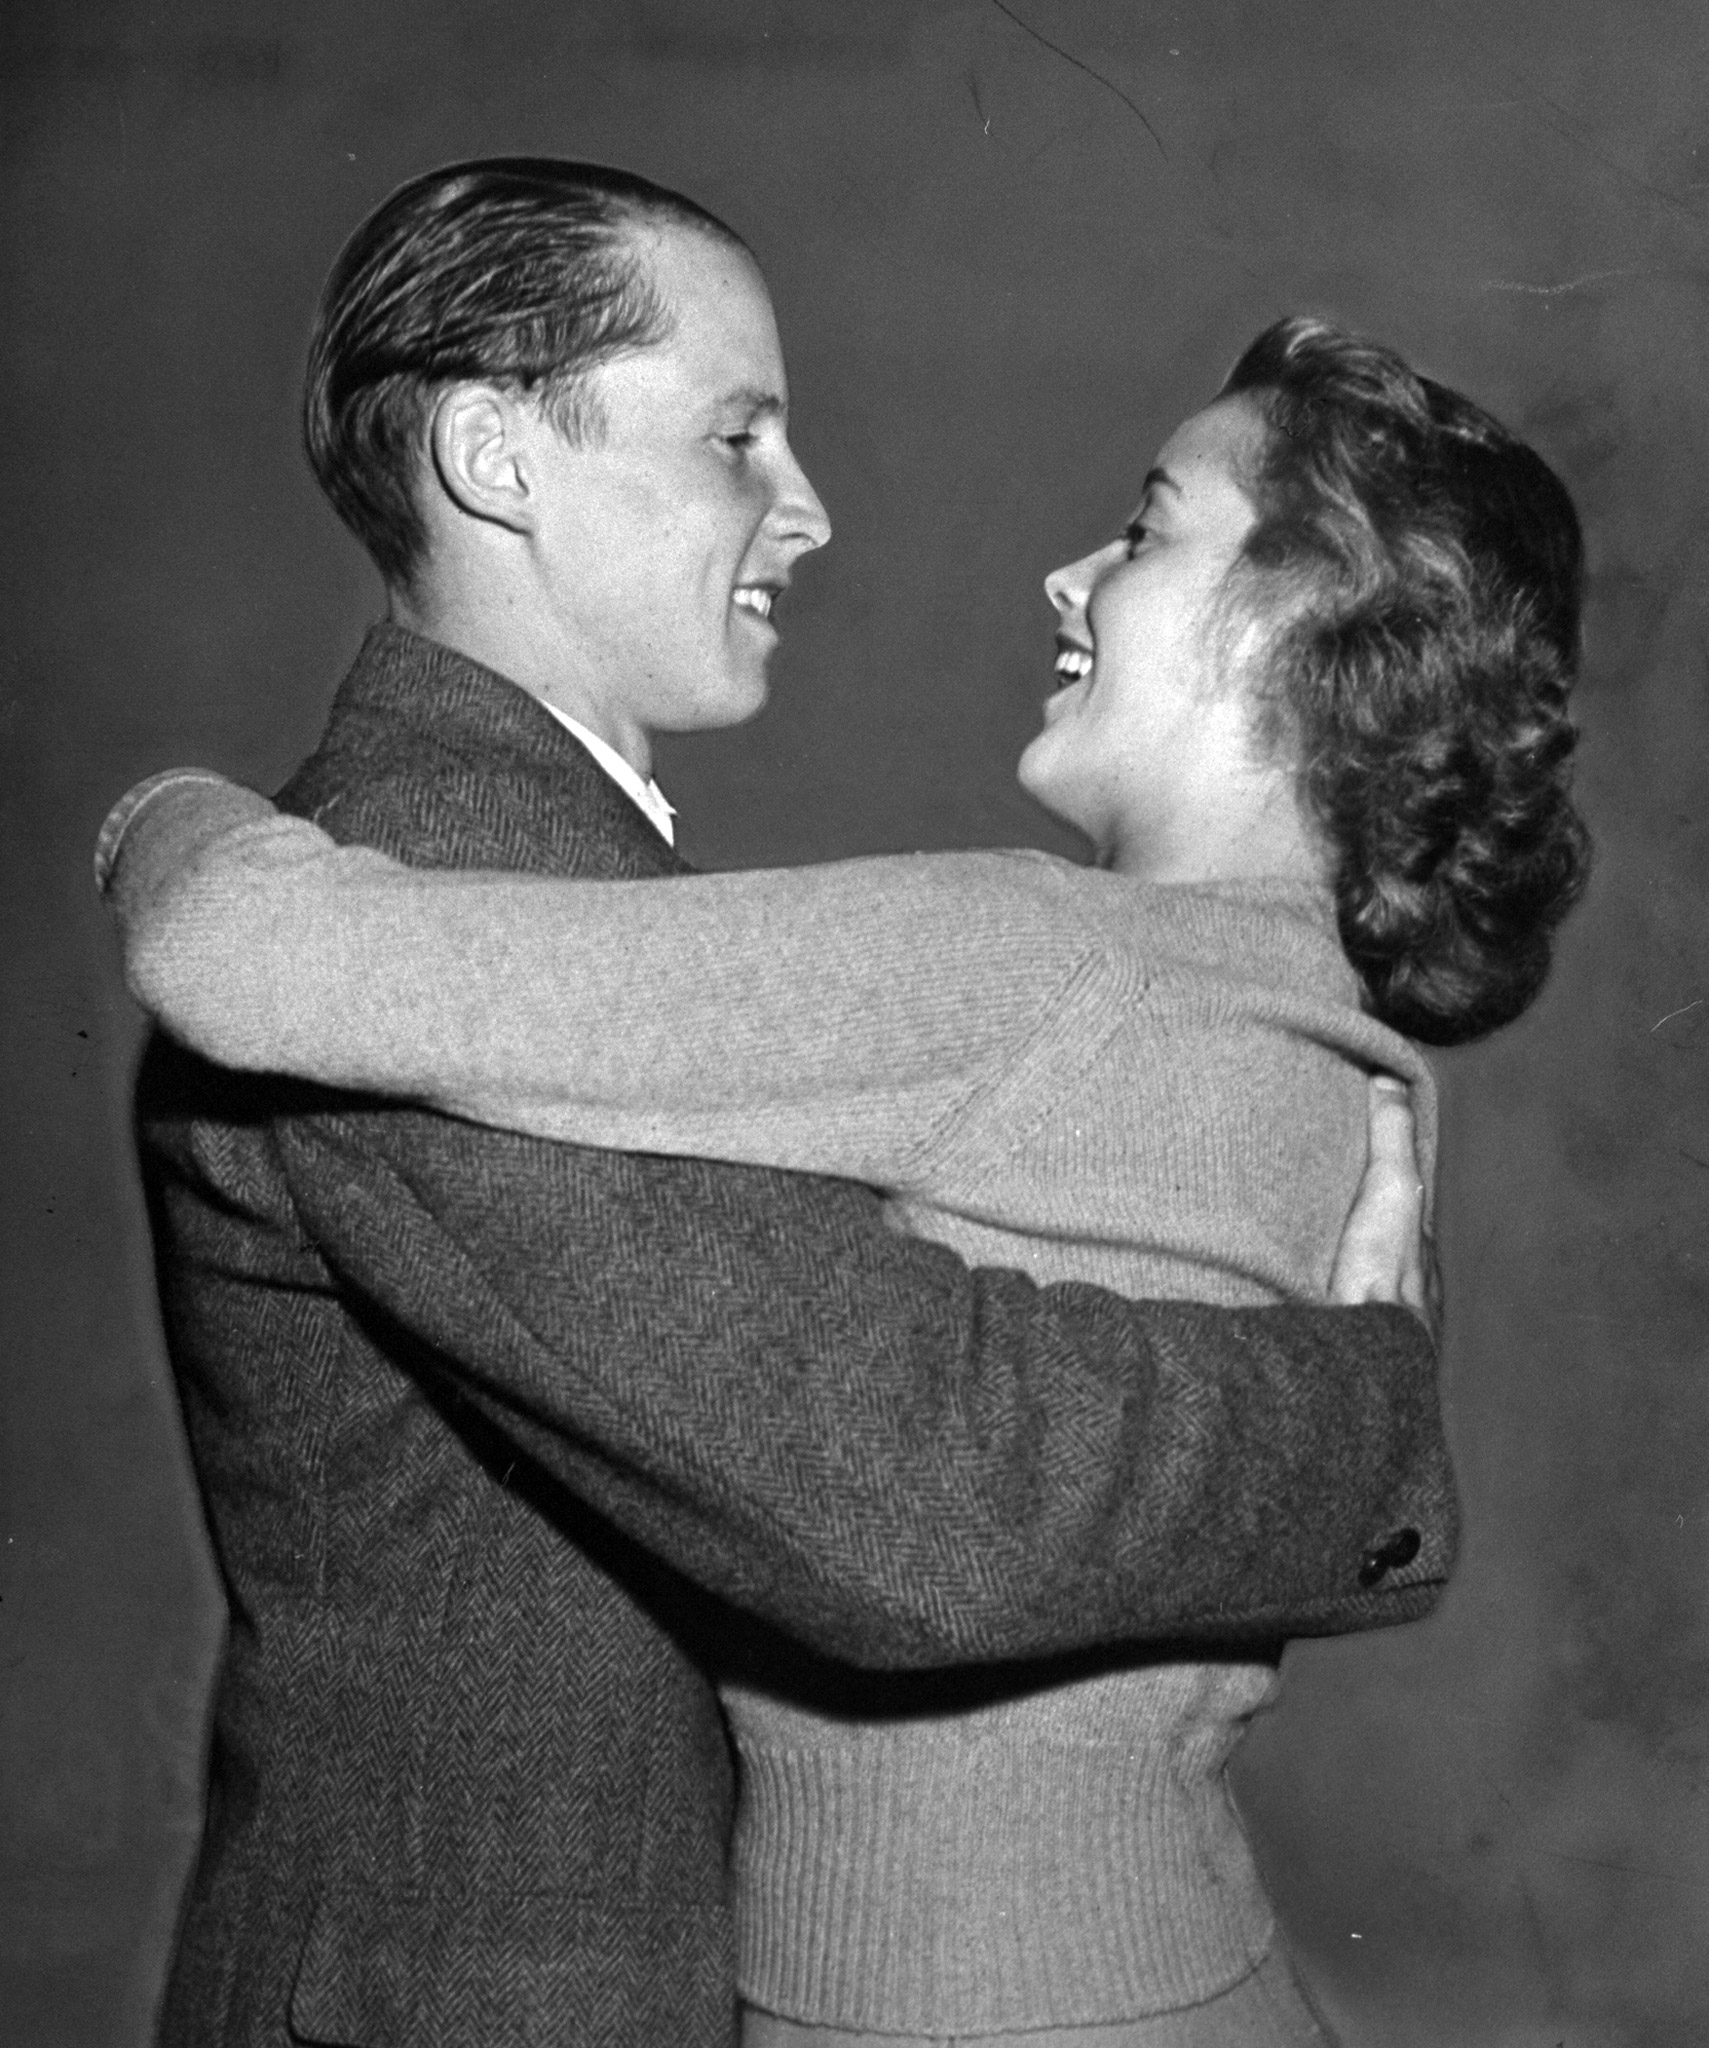 UCLA students Marjorie Henshaw and Johnny Hessel embrace one another at homecoming, 1939.